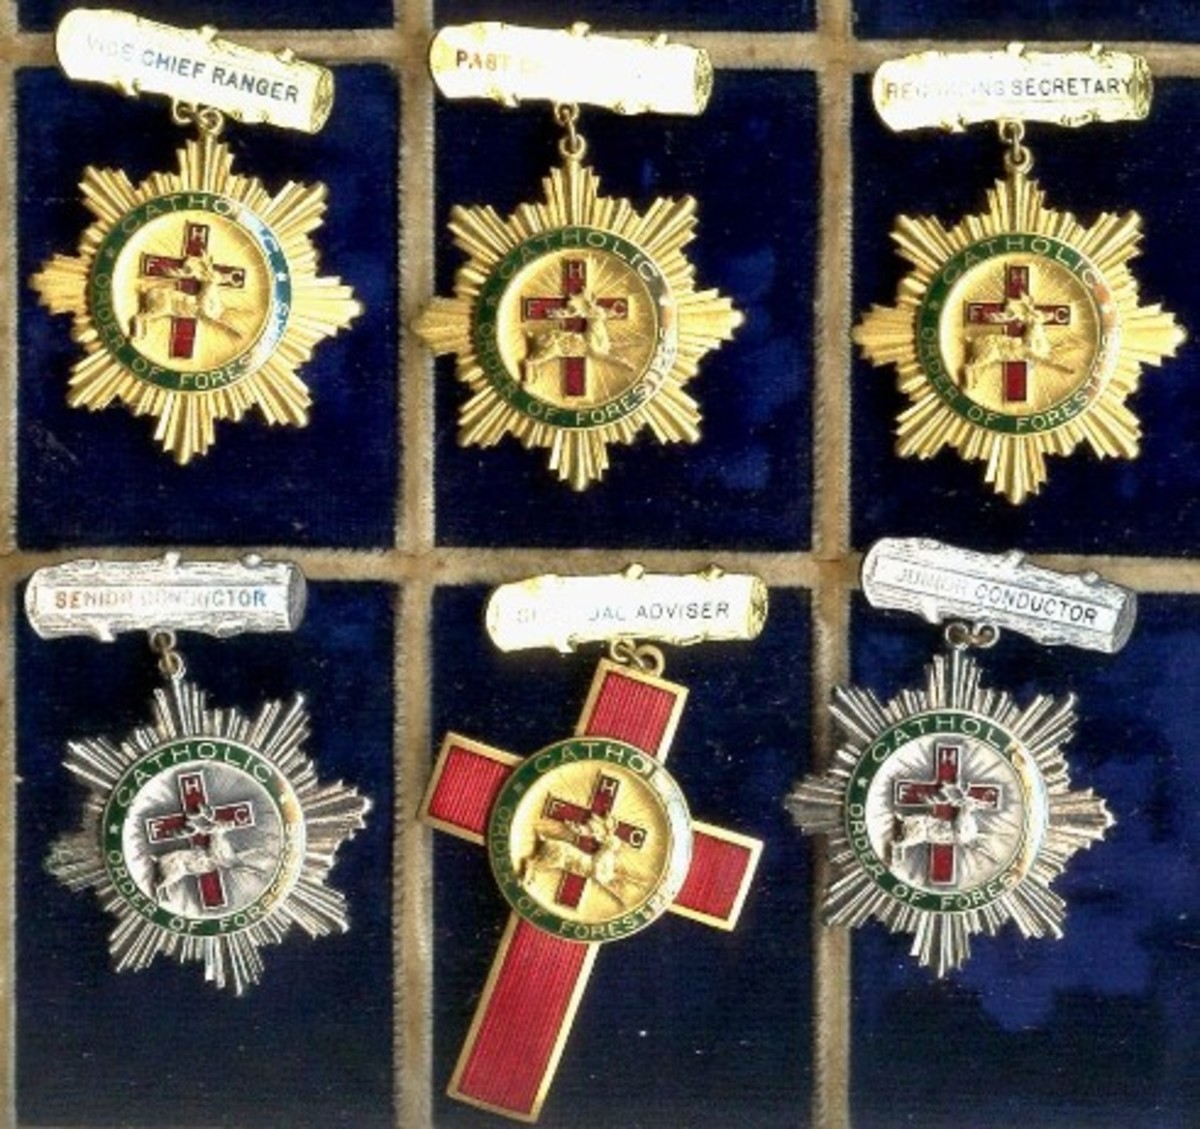 Catholic Order of Foresters, medals, ranks,